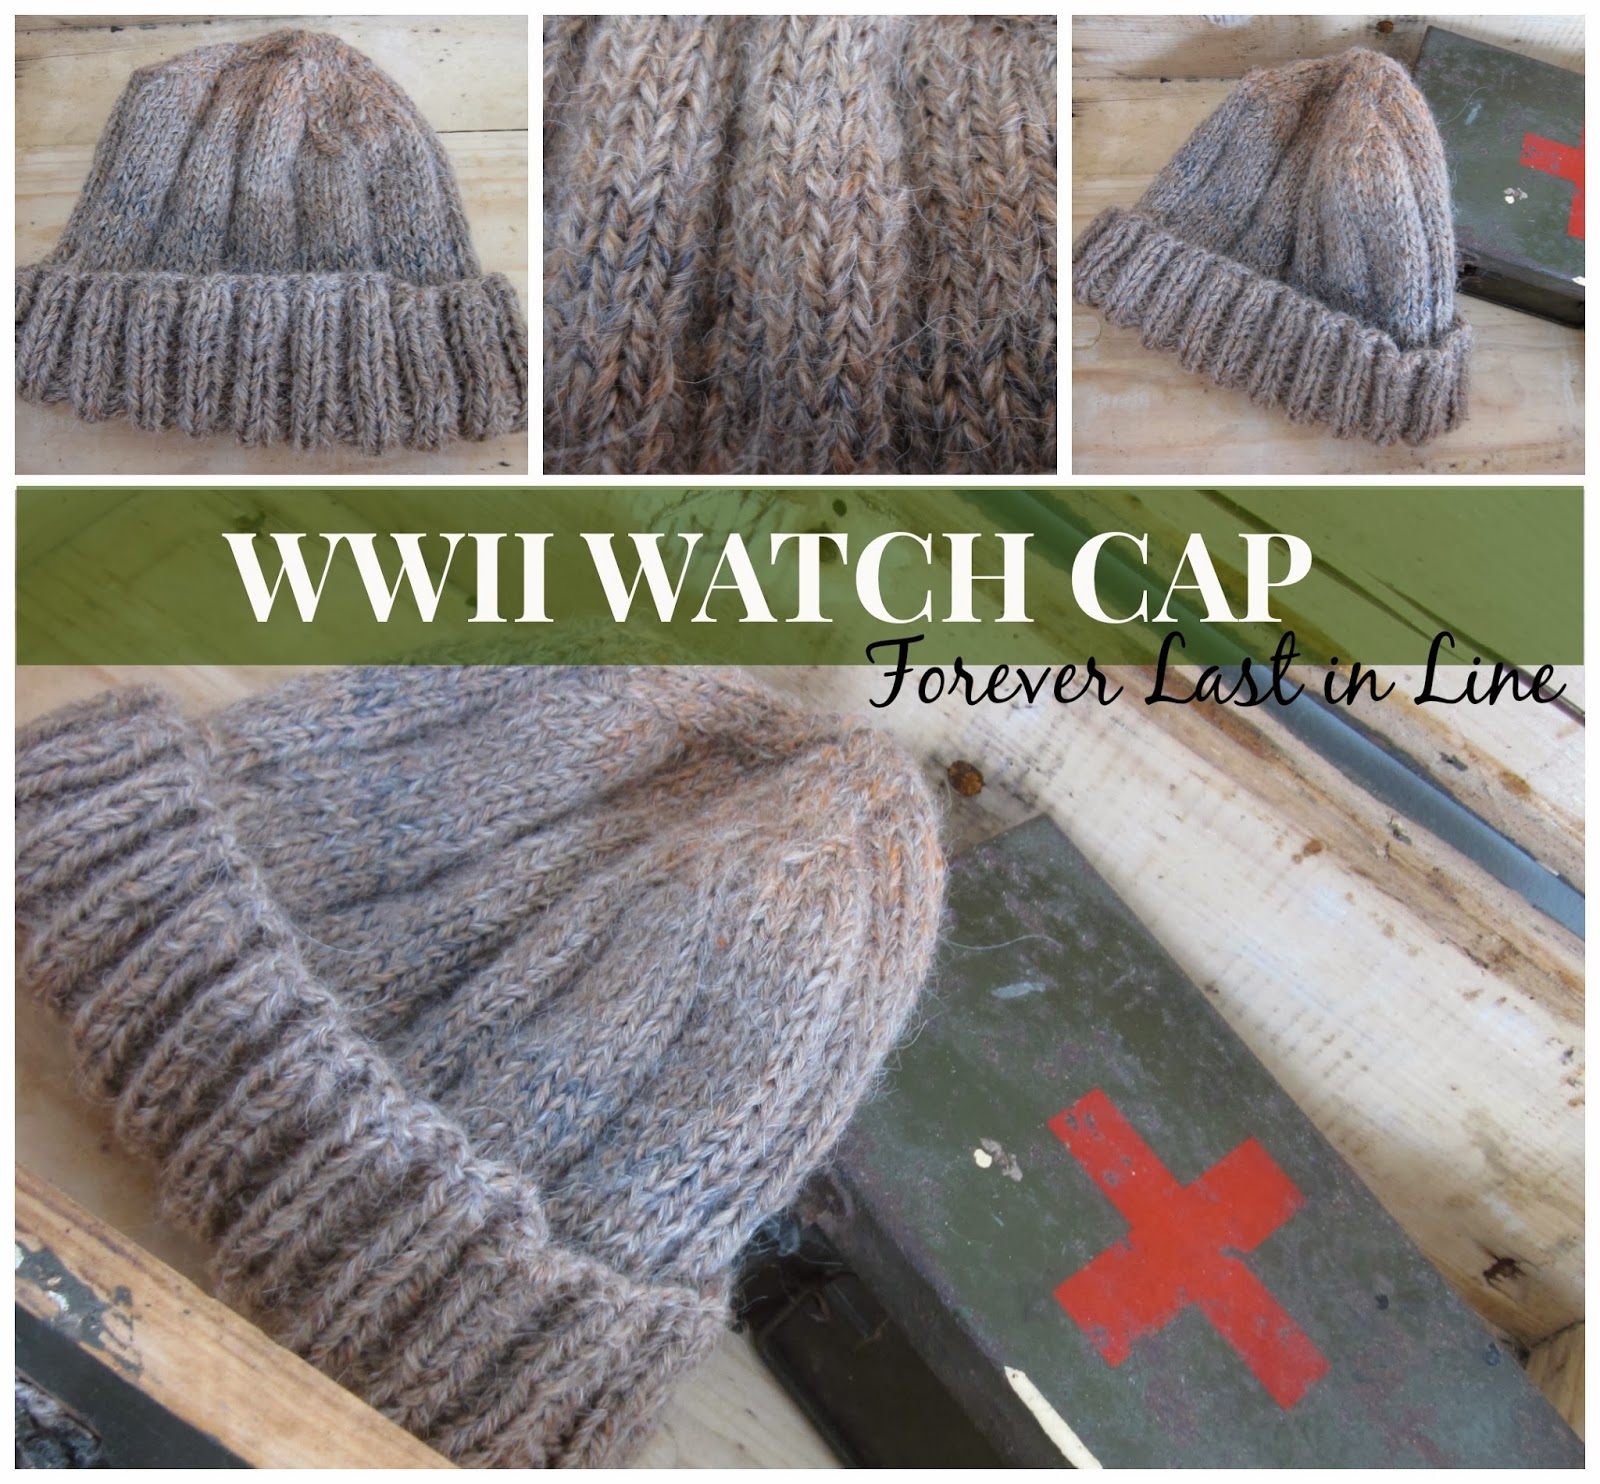 Knitted Watch Cap Pattern : Forever Last In Line: WWII Watch Cap: Free Pattern and Reflections on the Past